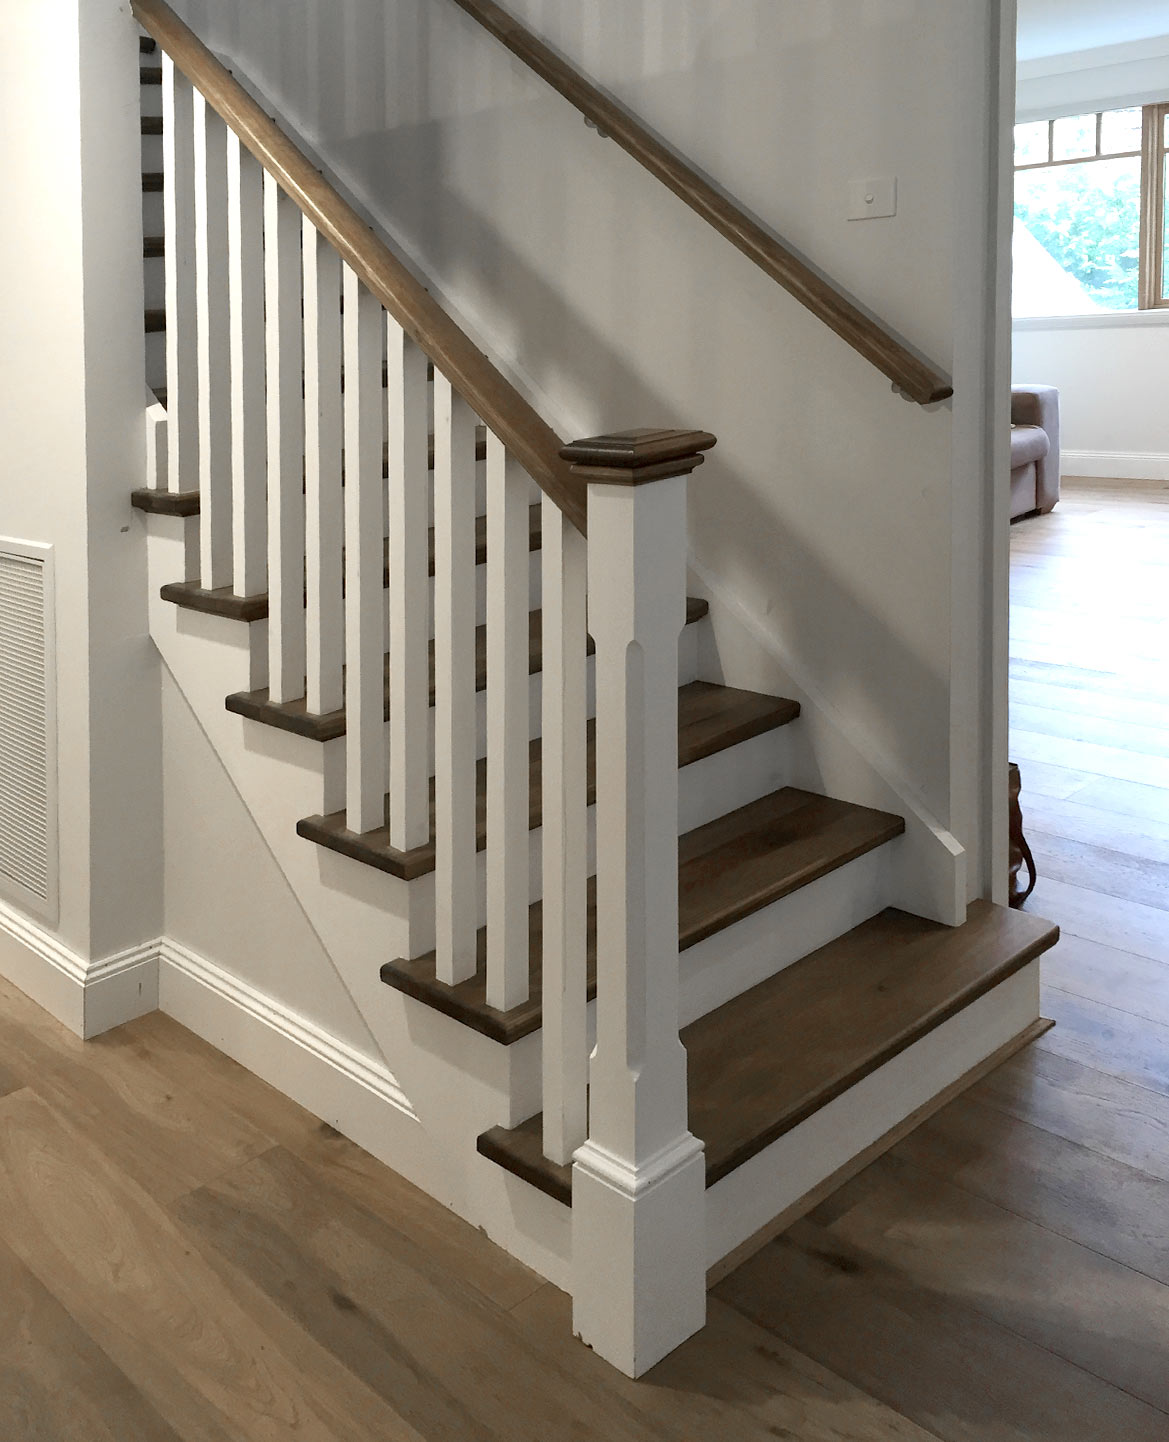 This Staircase Features A Cut Stringer In MDF With KDHW Treads, Handrail  And Feature Caps. The Posts And Balusters Have Been Completed In Pine.